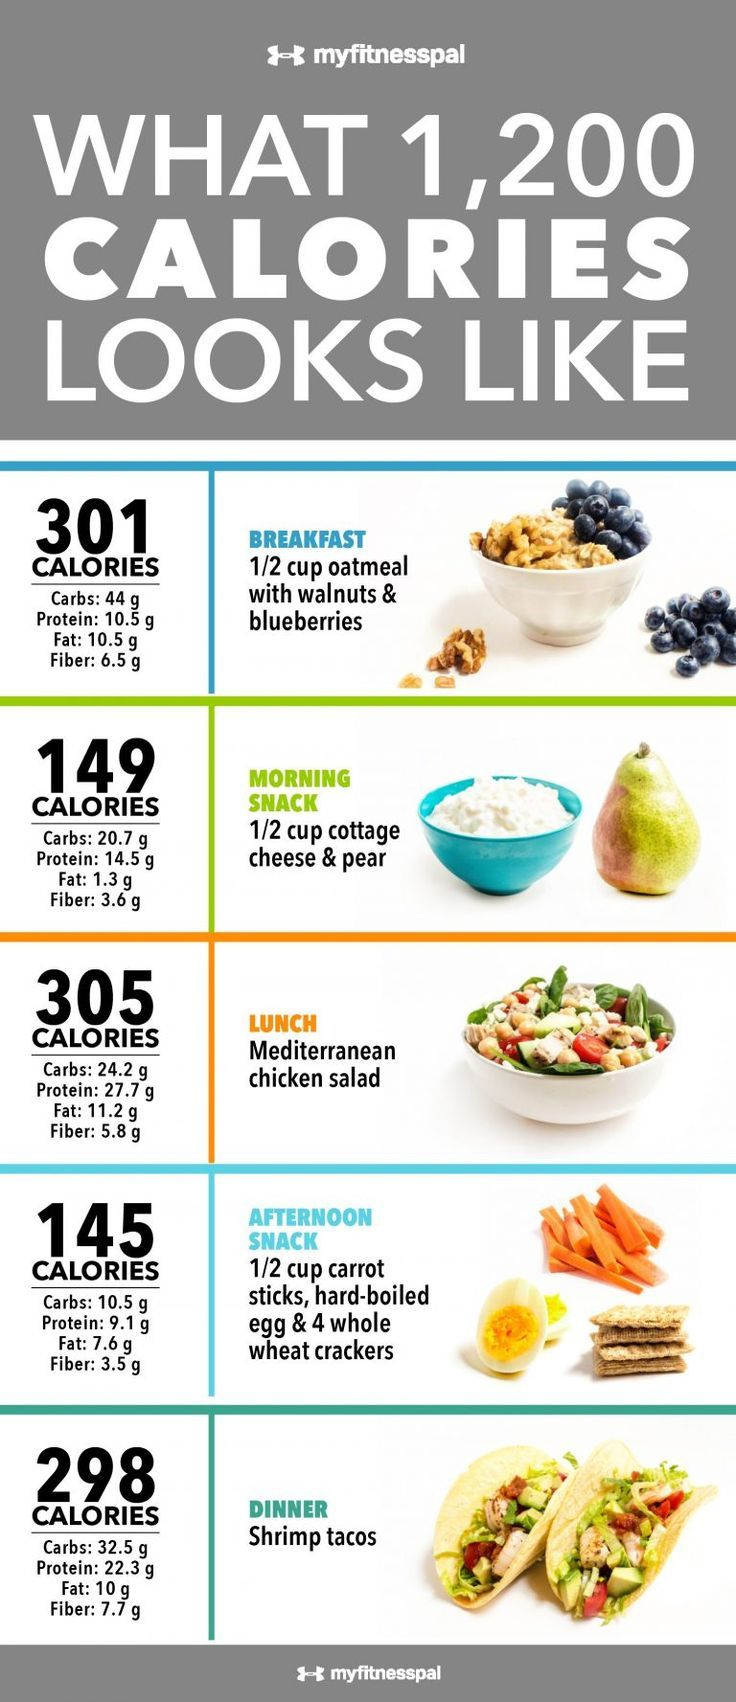 How to Lose 100 Pounds in 6 Months (8 Realistic Steps + Diet Plan)   - Diet - #diet #lose #Months #p...